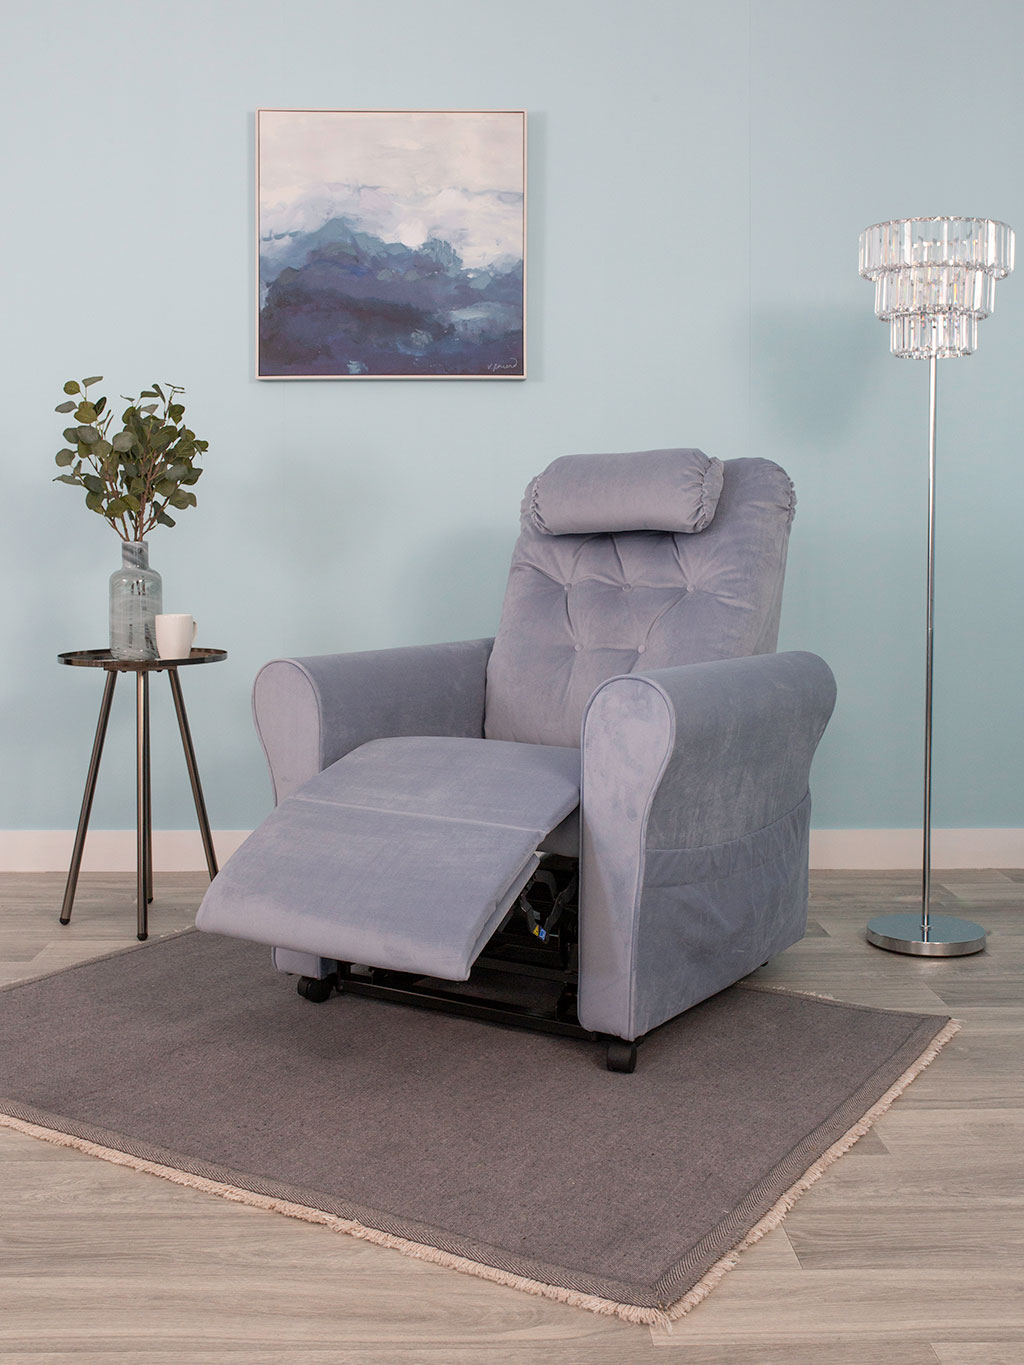 Adjustamatic Conway rise and recline chair